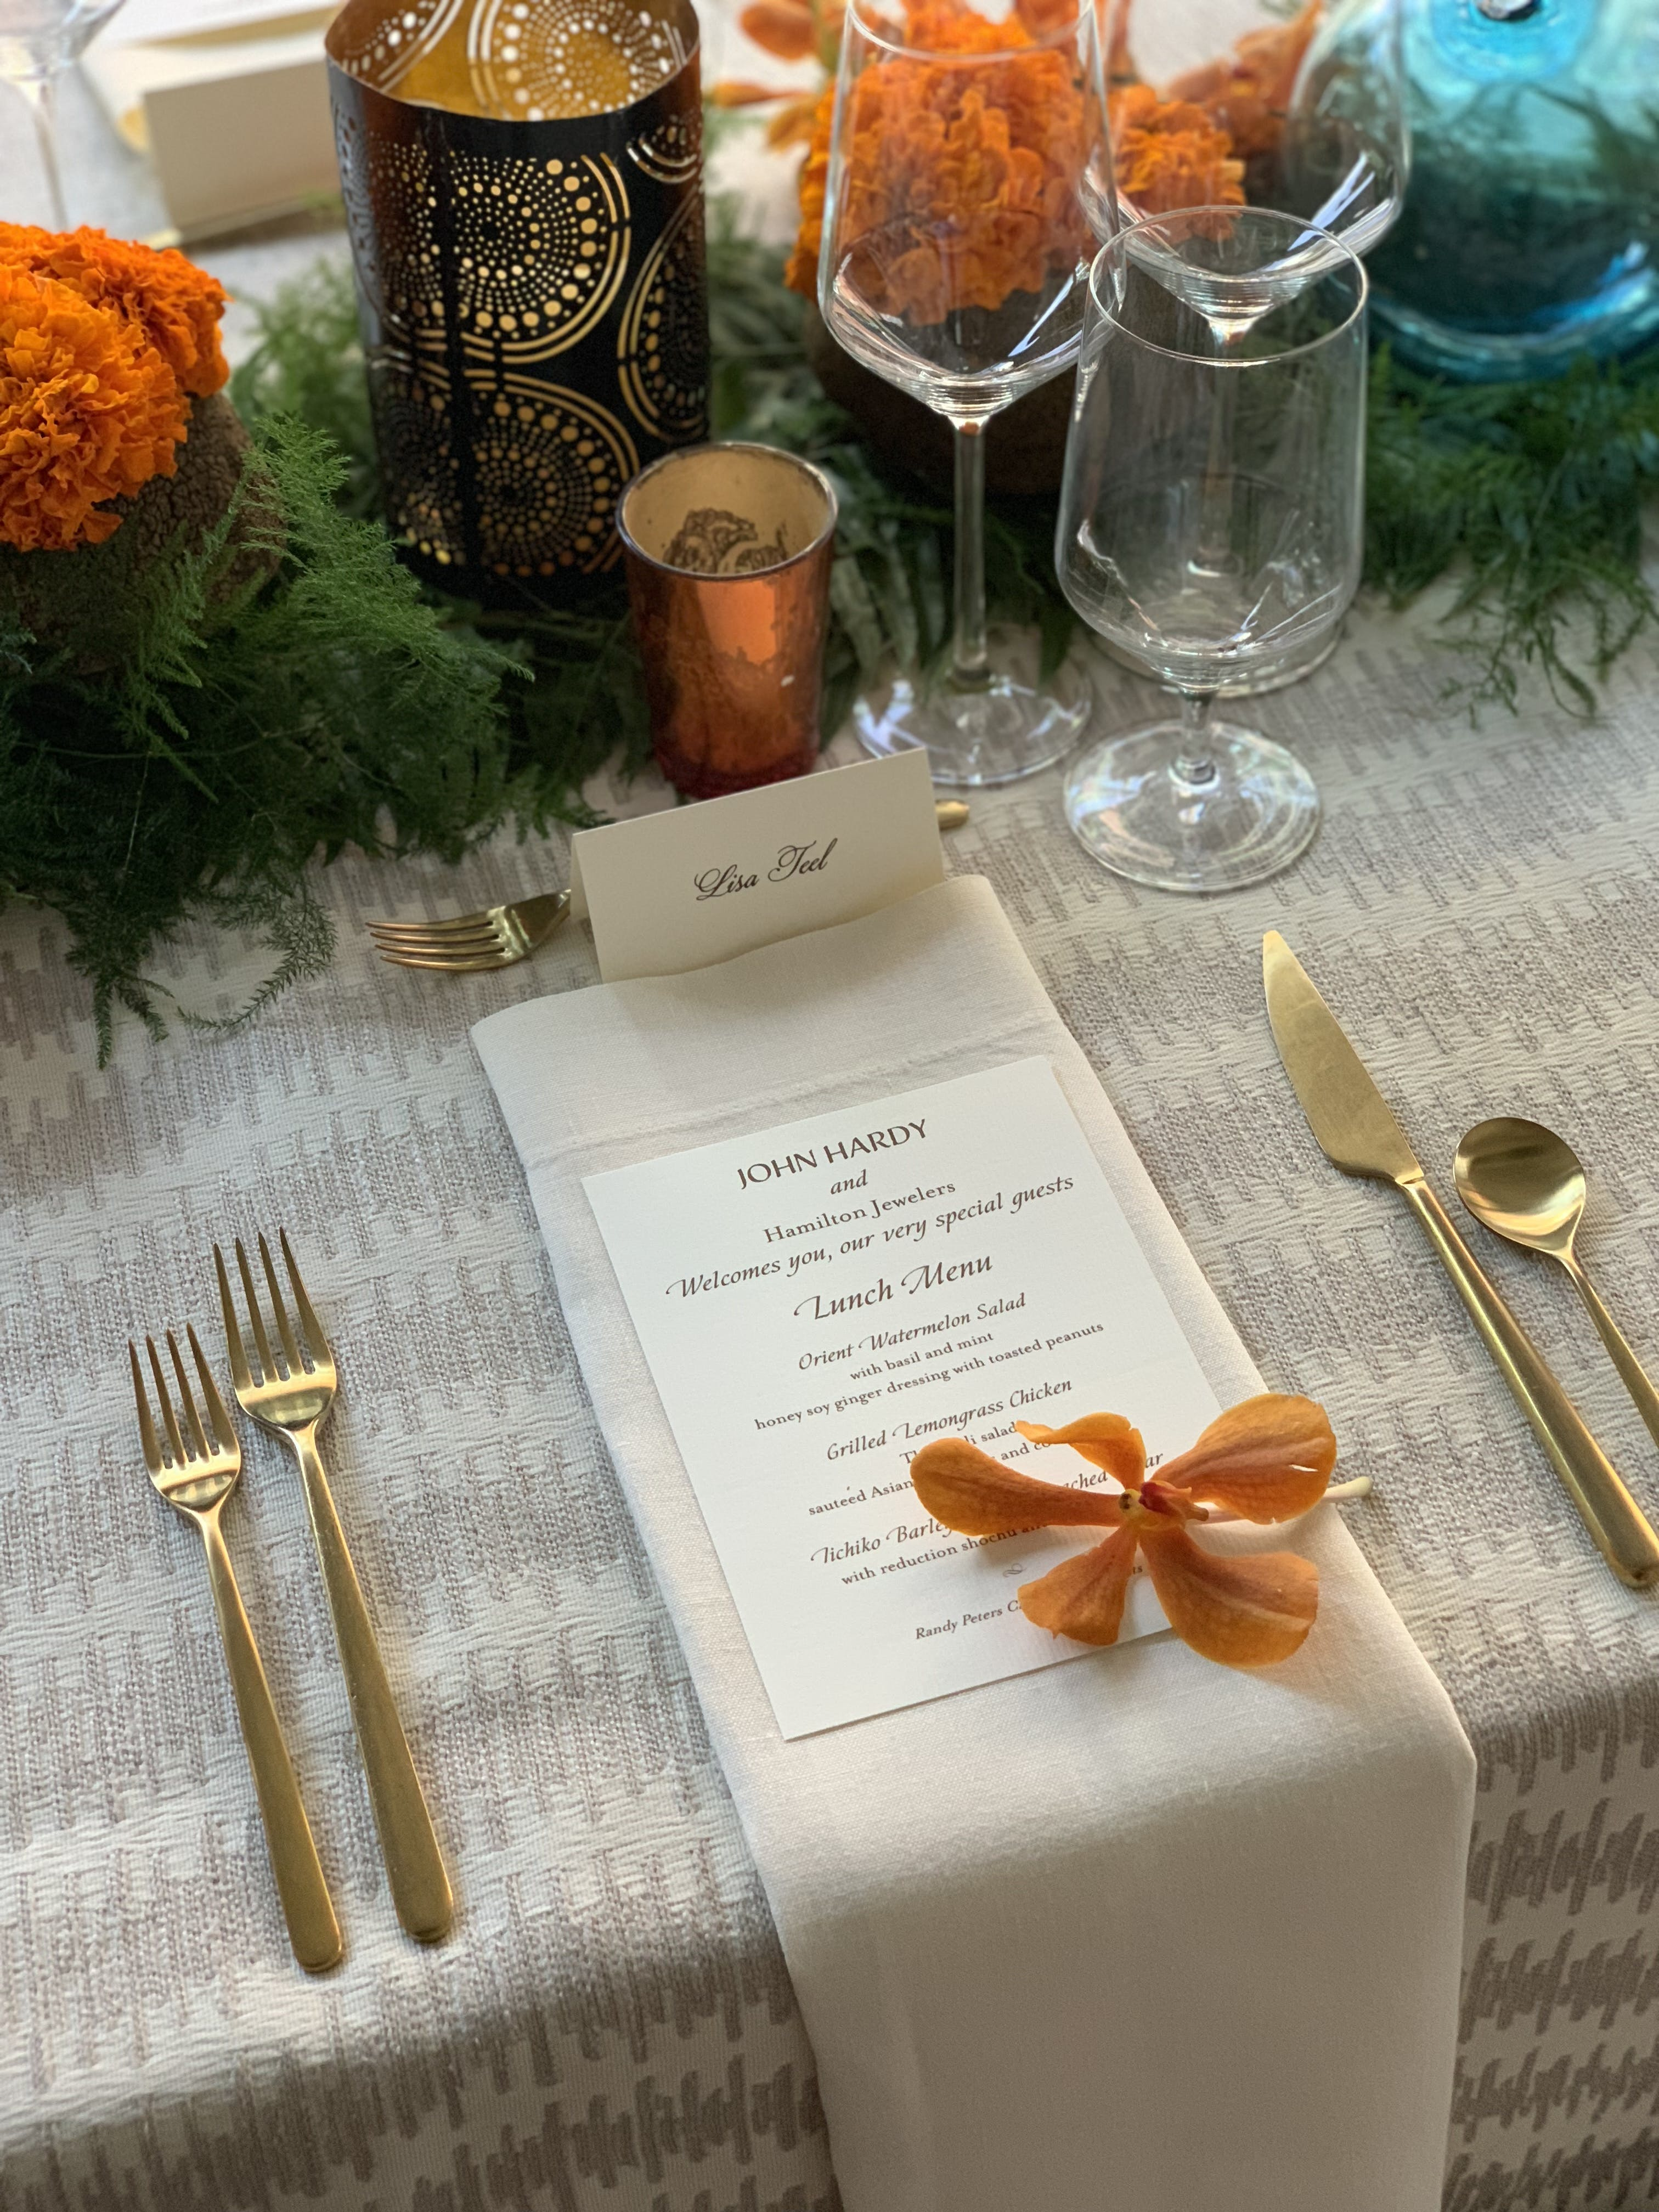 Stunning Bali-Inspired Client Appreciation Luncheon at Hamilton Jewelers Pavilion in Sacramento, CA